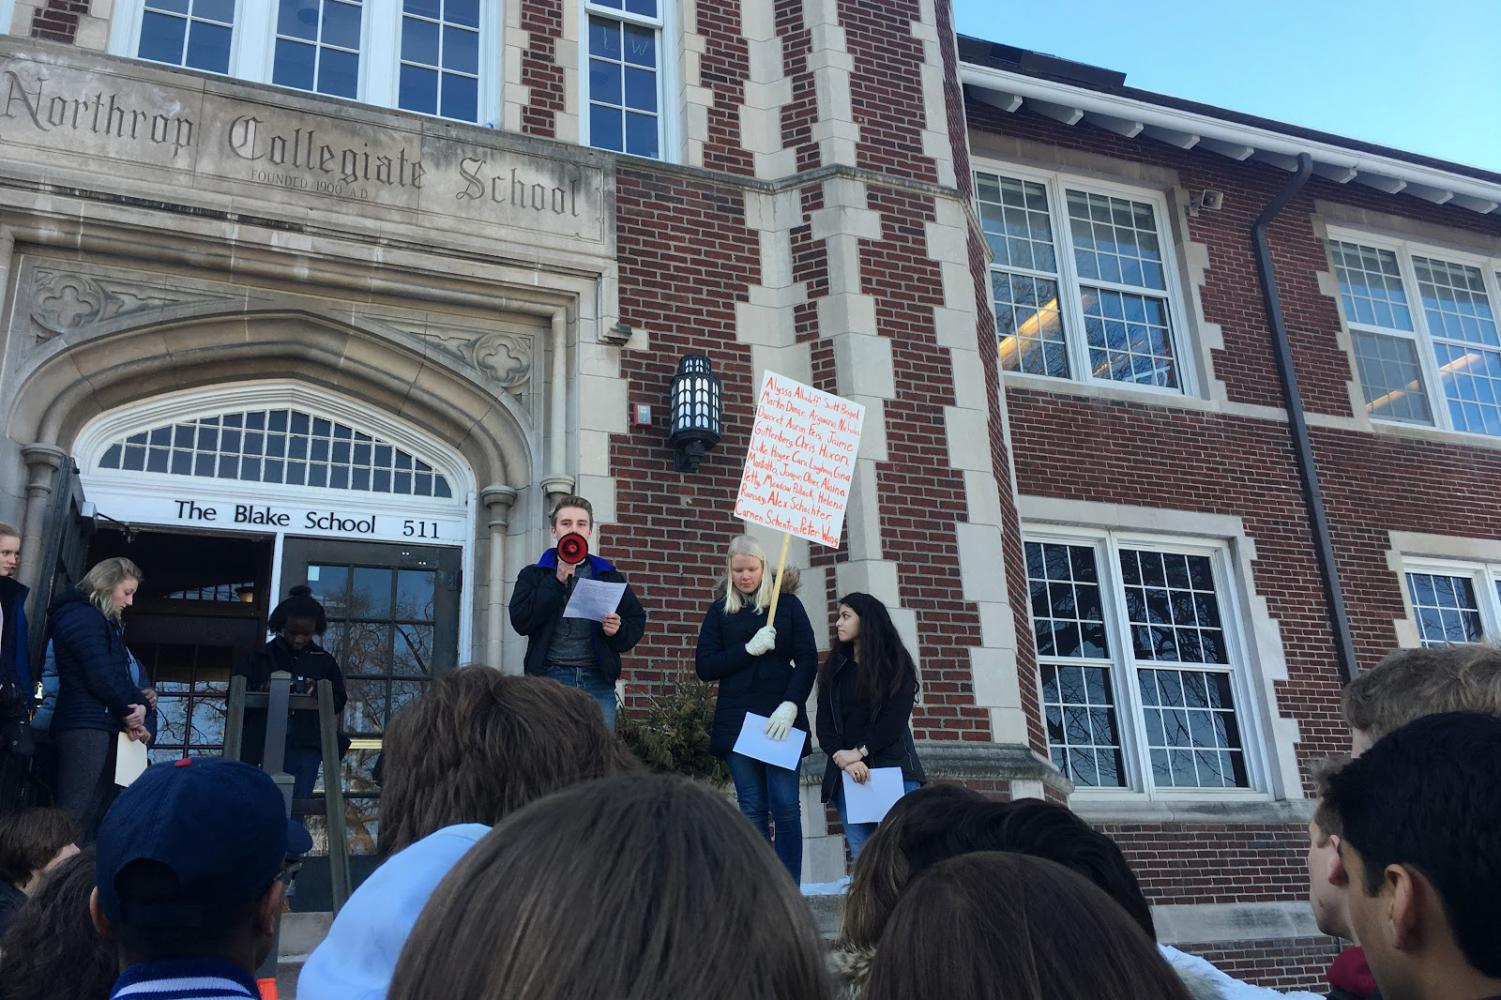 More than 70 students signed up to participate in the walkout, and even more actually came.